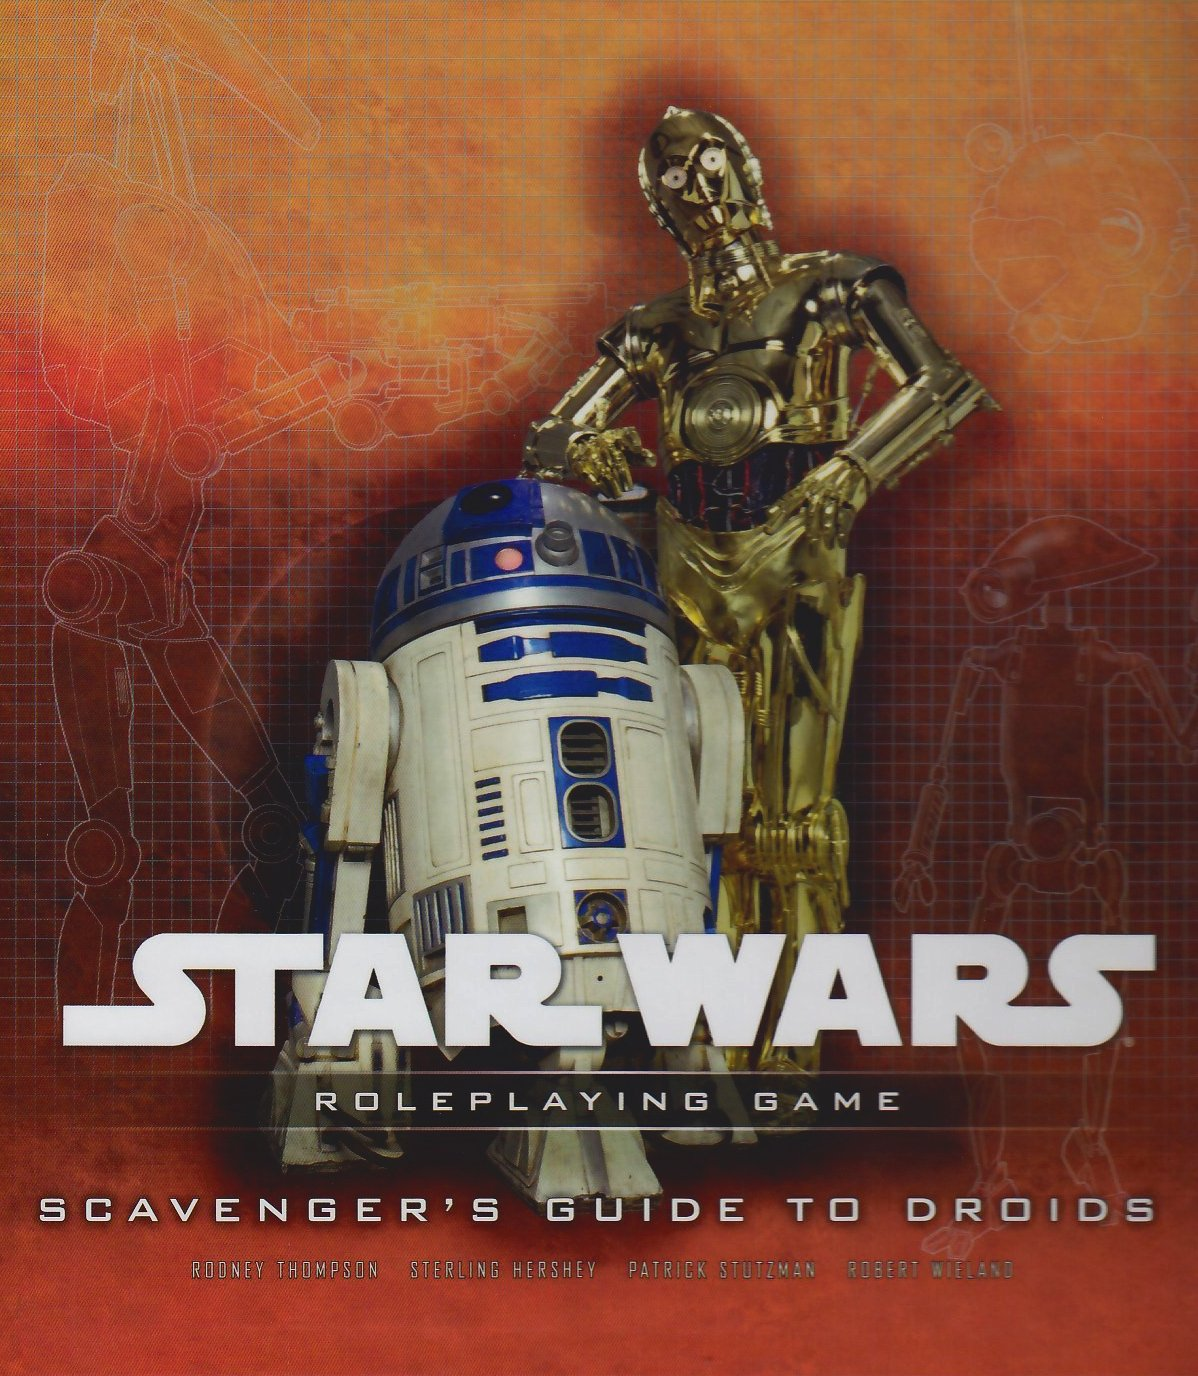 Star Wars: Scavenger's Guide to Droids - Roleplaying Game free download